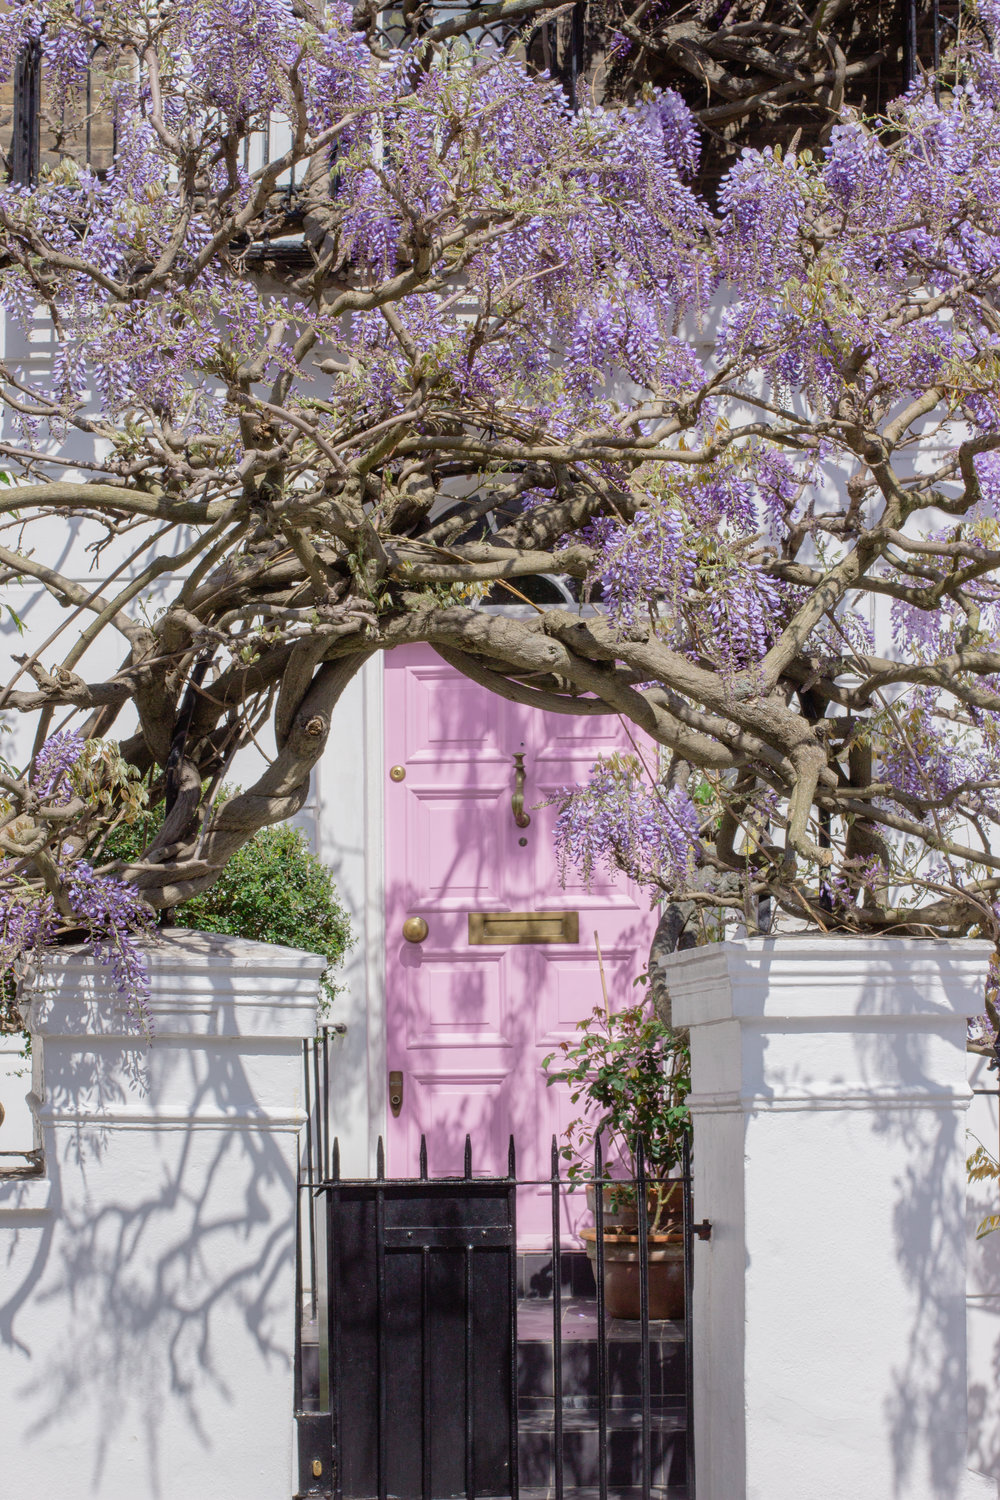 That pink house. The best wisteria hysteria spots in London | Sundays and Somedays